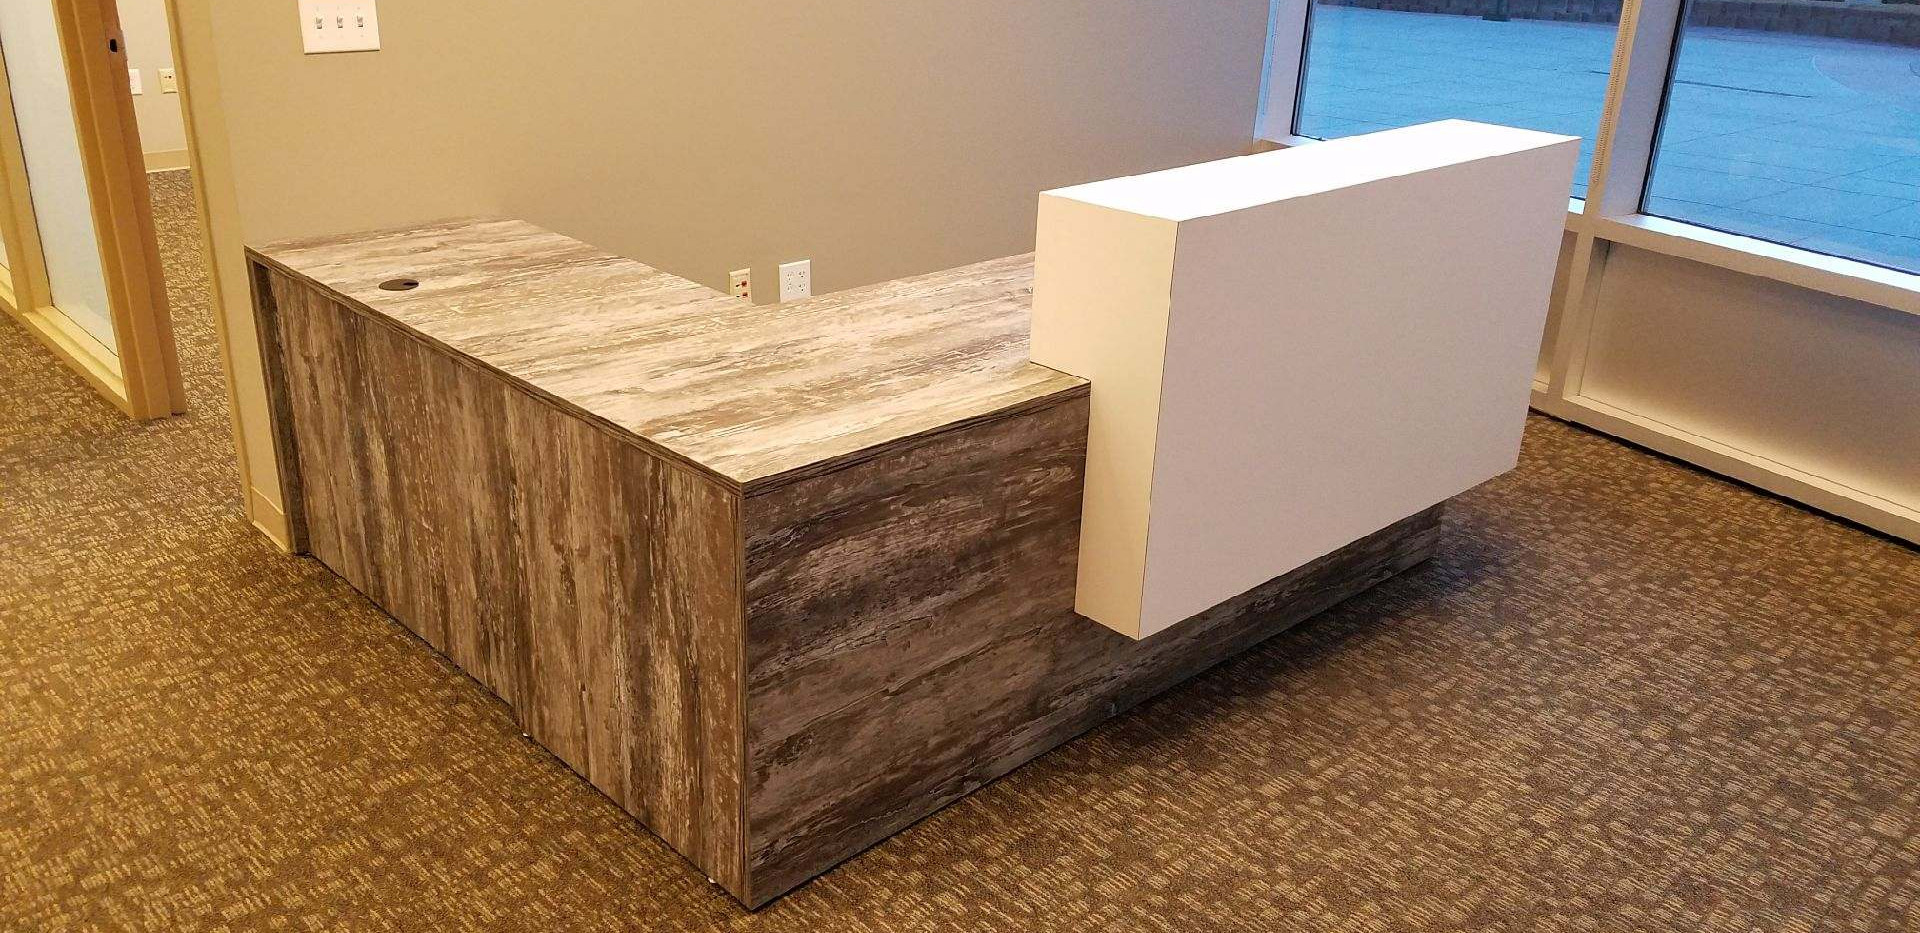 Custom Overture reception desk in Intrigue laminate